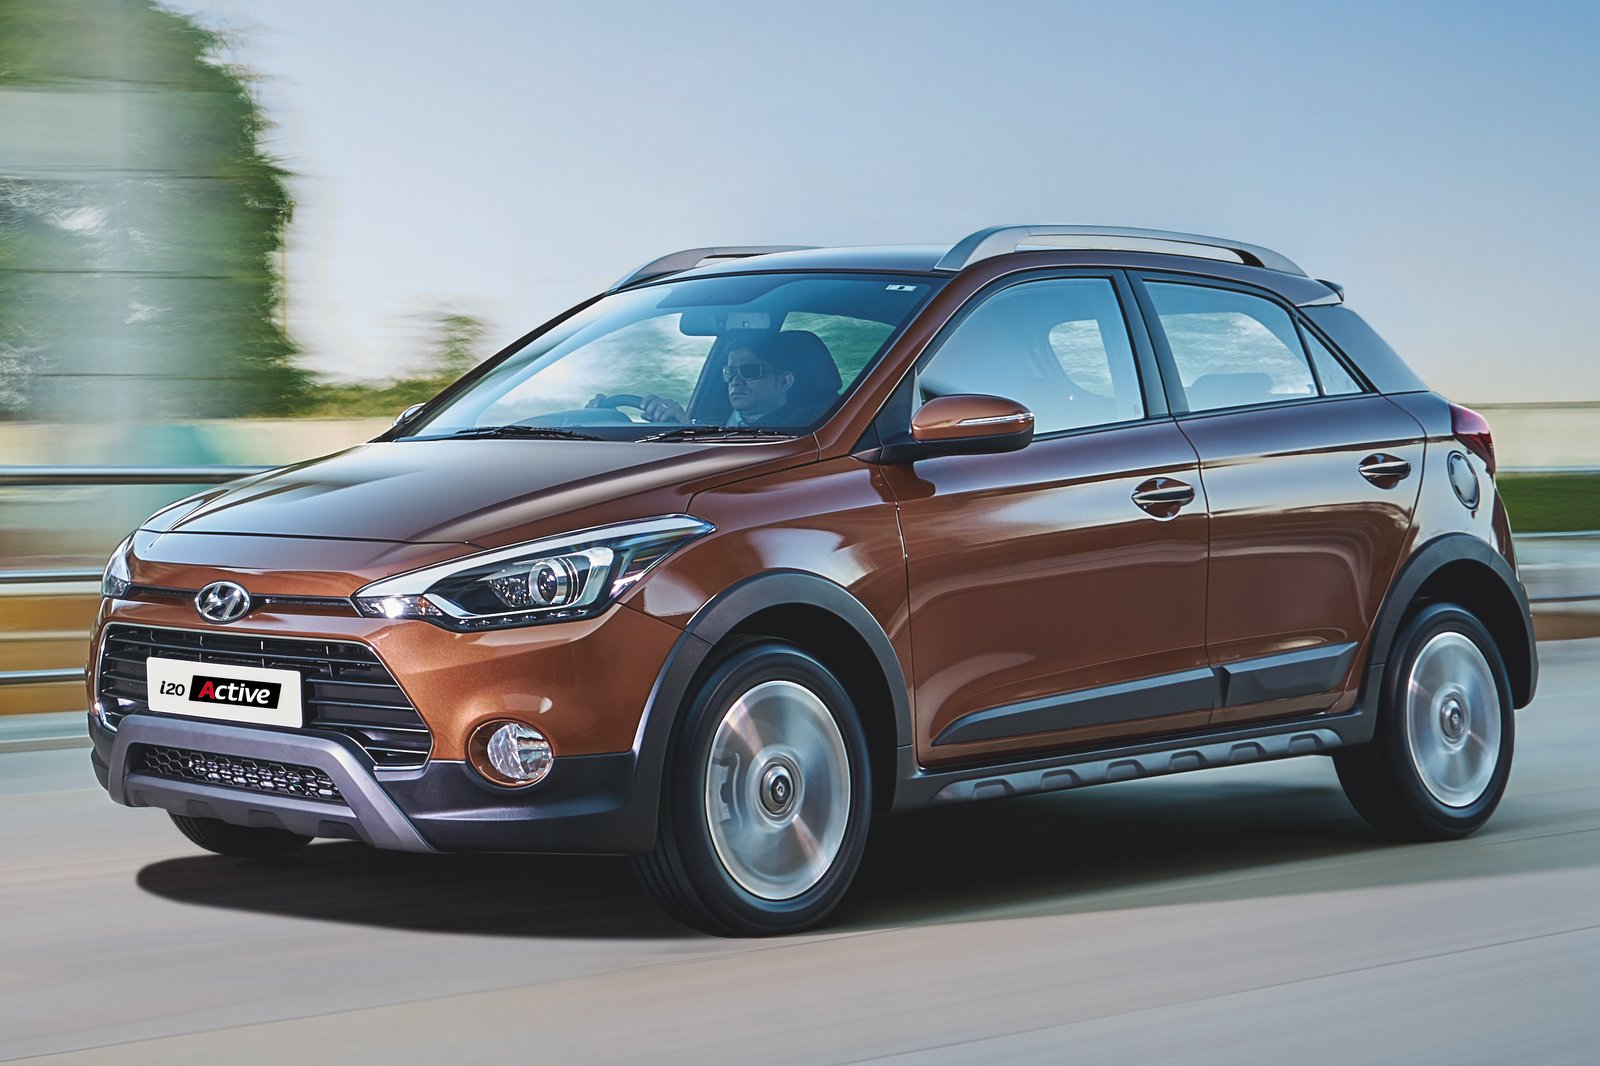 Hyundai i20 Active Specifications, Price, Mileage, Pics, Review